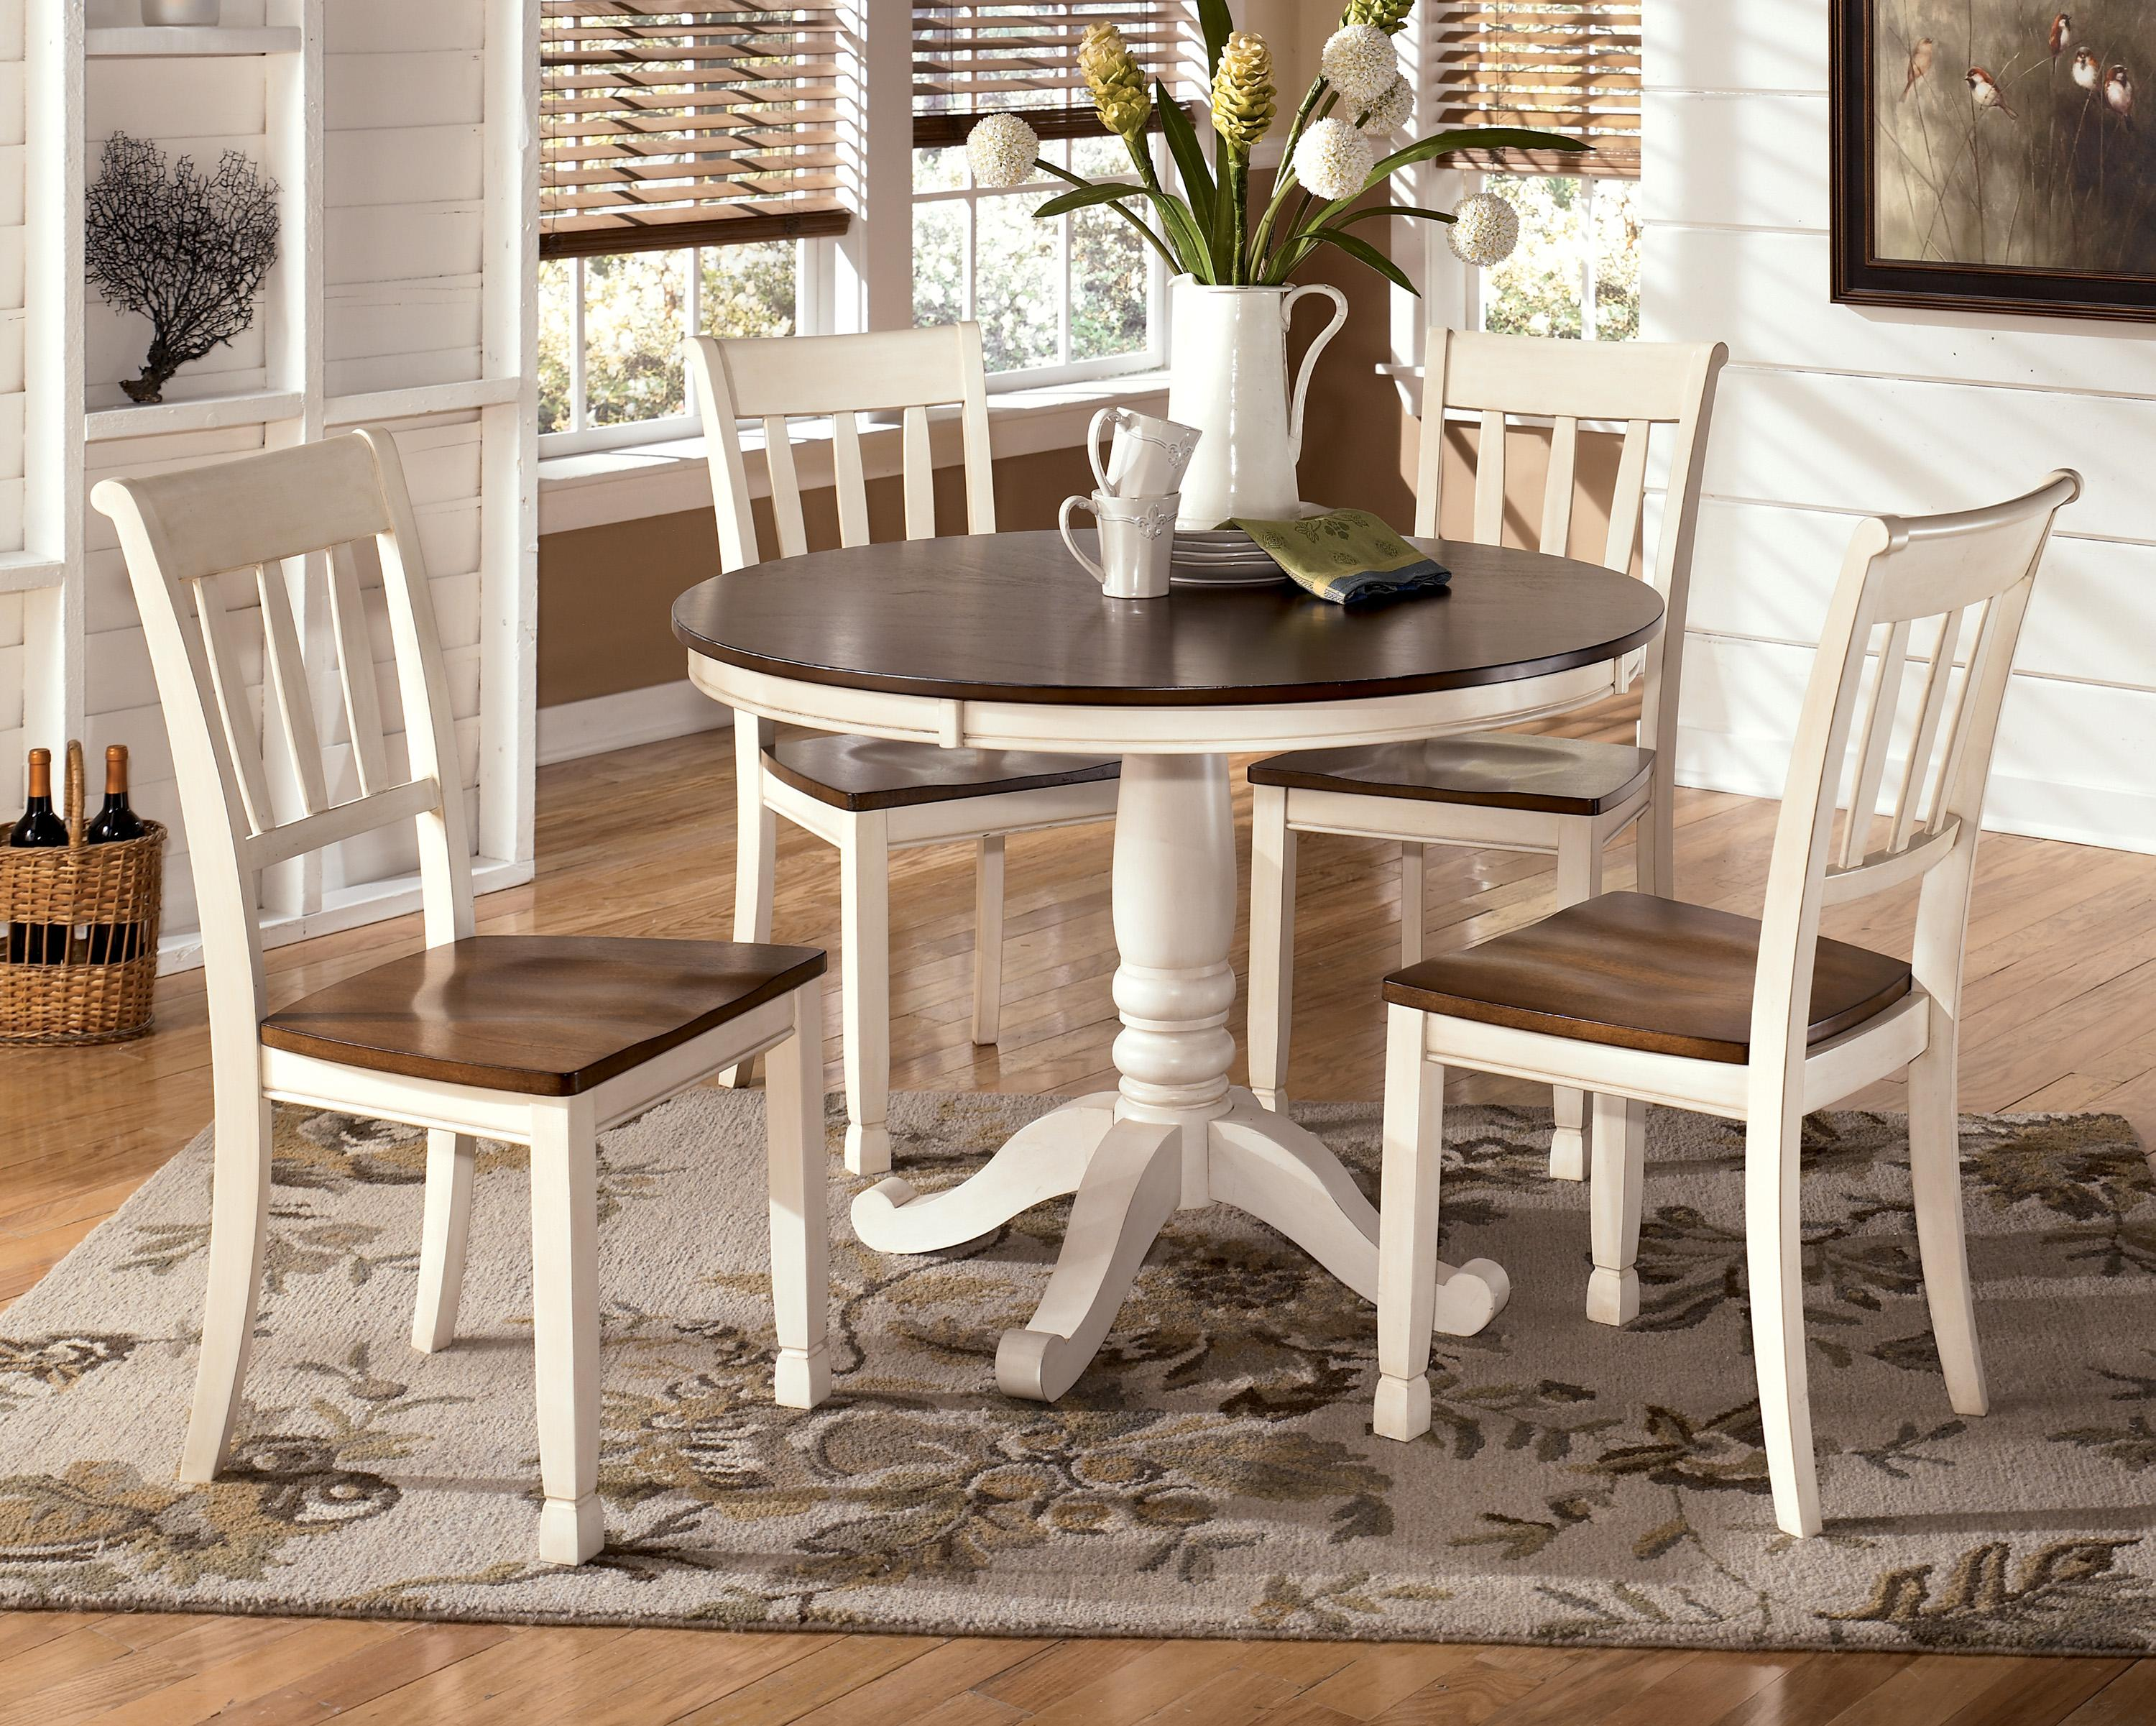 Two Tone Cottage Round Table and 4 Side Chairs by Signature Design